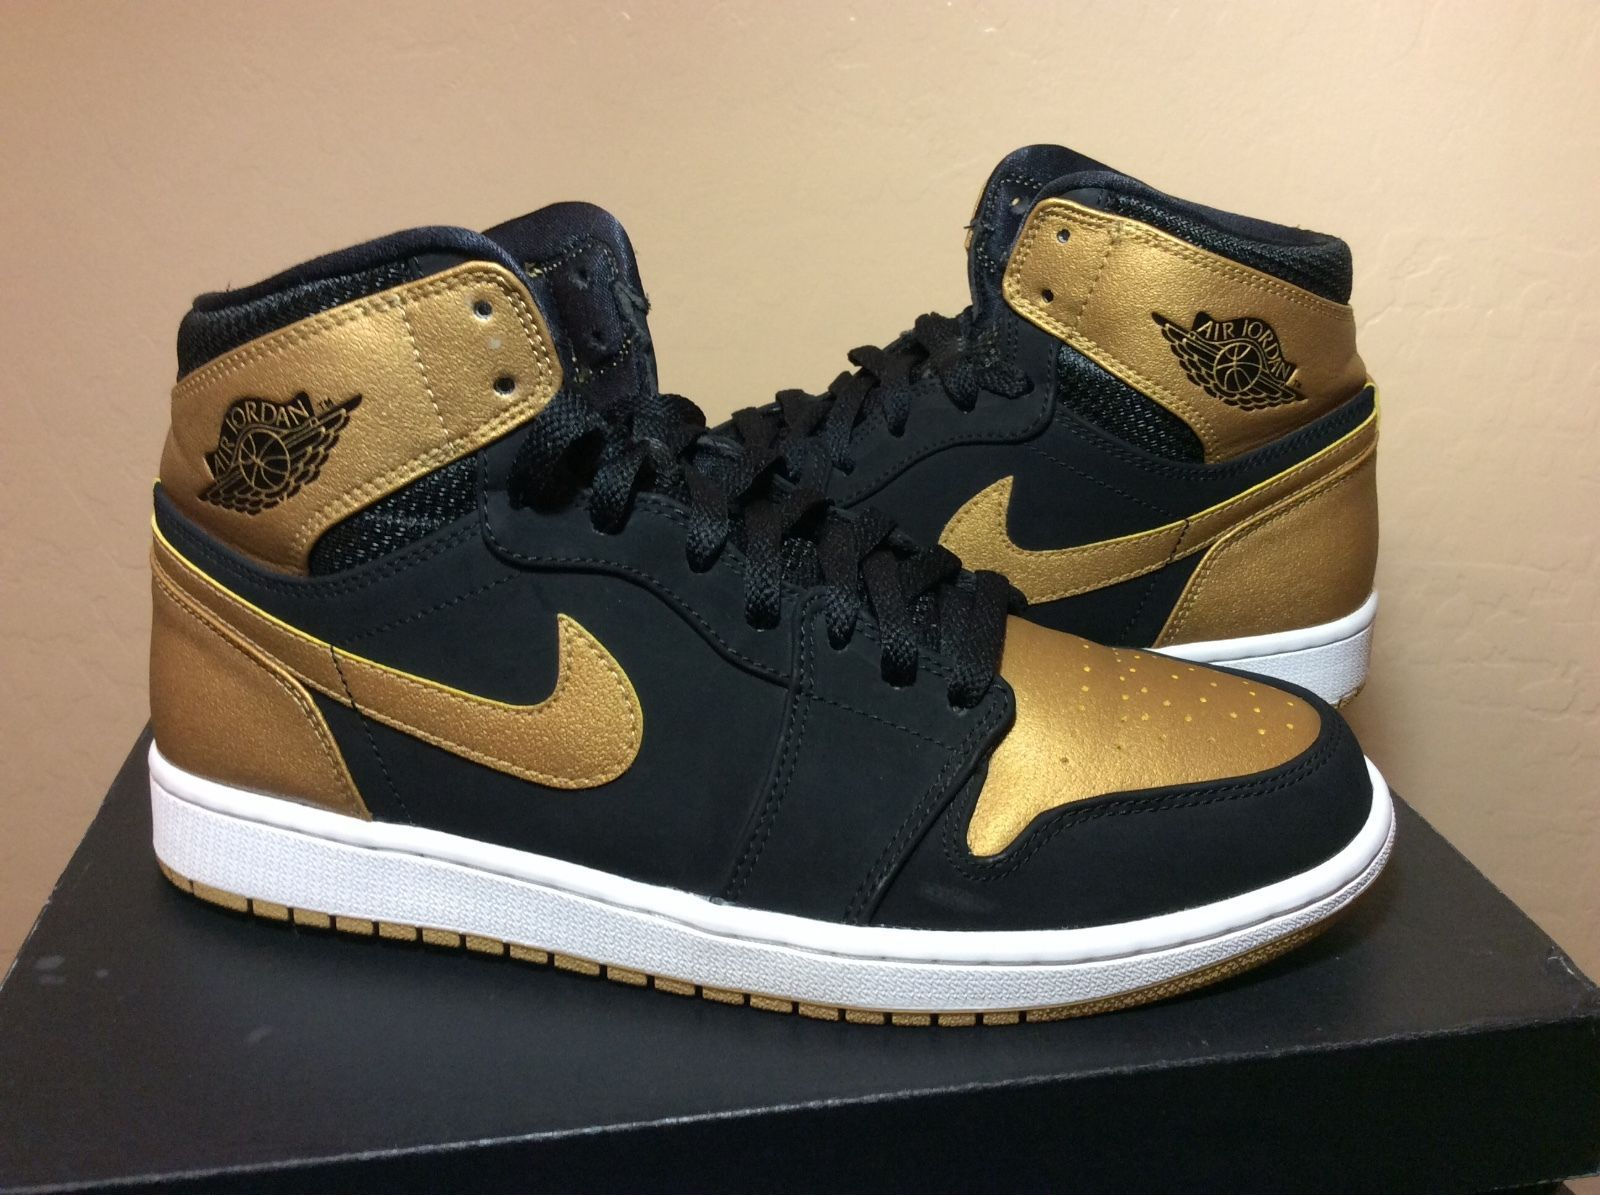 3a02de5bc43be5 Air Jordan Retro 1 High Melo Black Gold royal bred shadow OG Chicago sbb